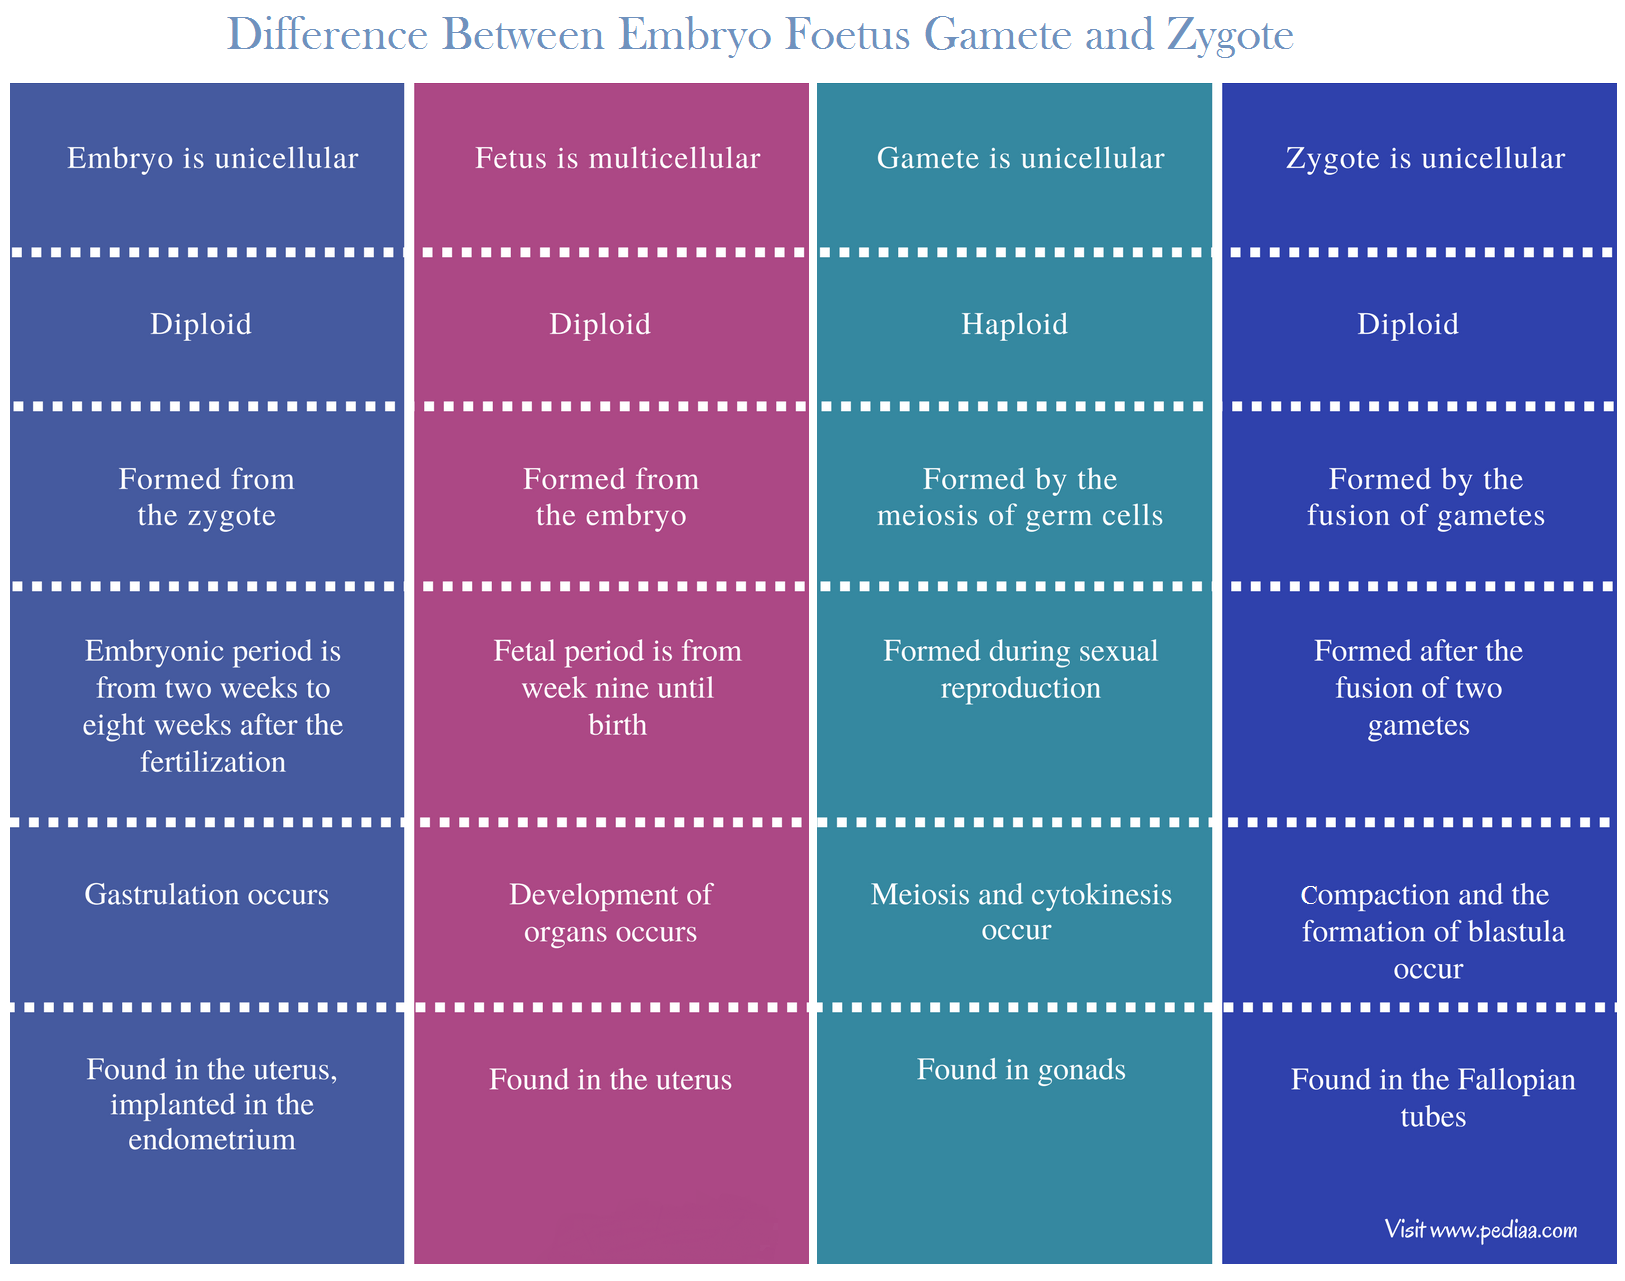 Difference Between Embryo Foetus Gamete and Zygote - Comparison Summary